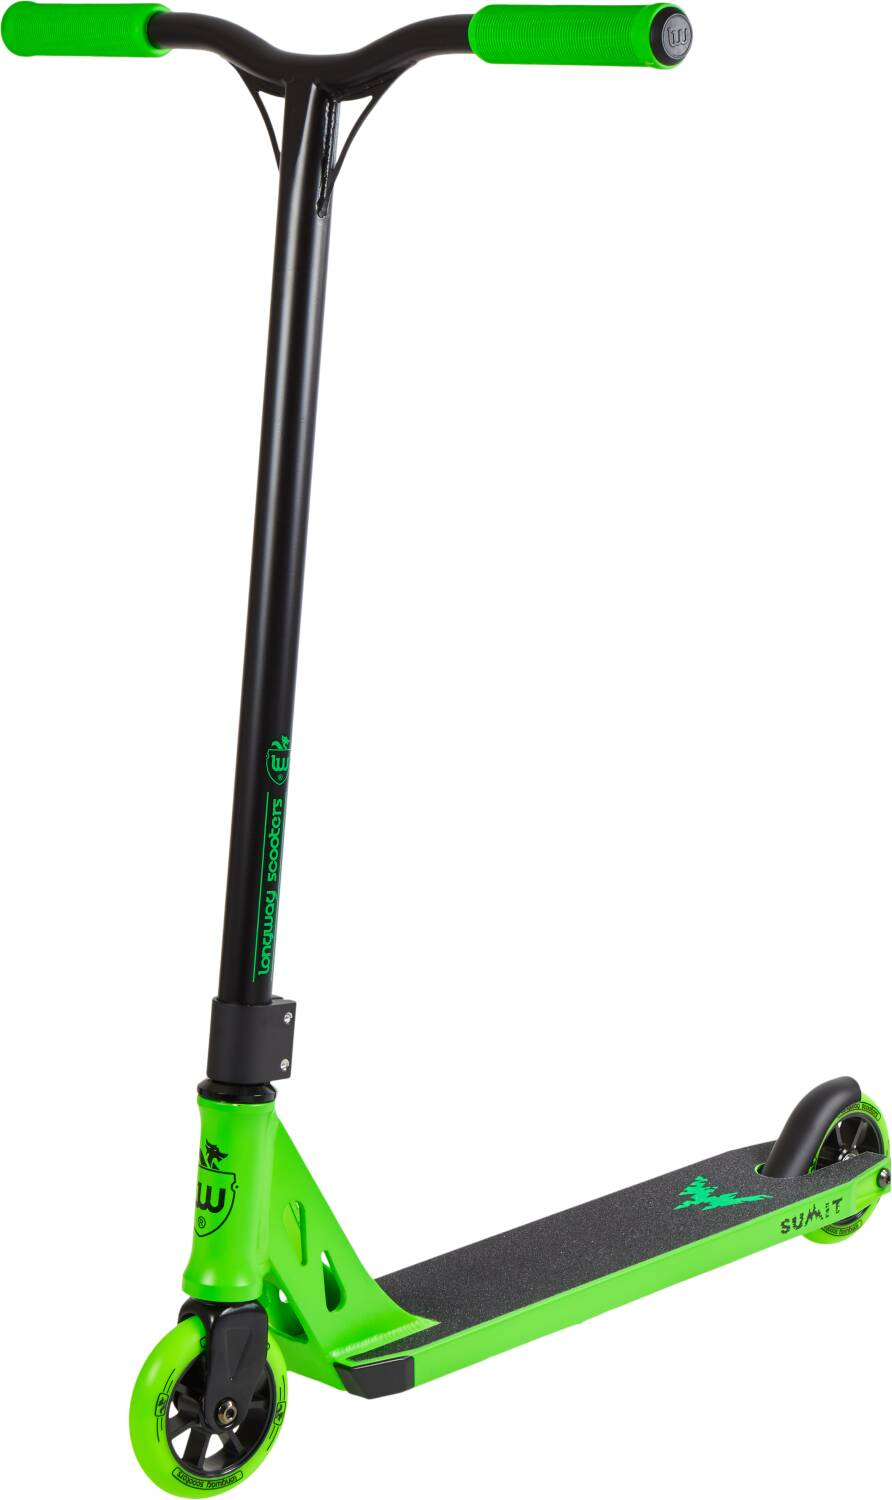 sportstoys.se-longway-summit-2k19-pro-scooter-2u-grön